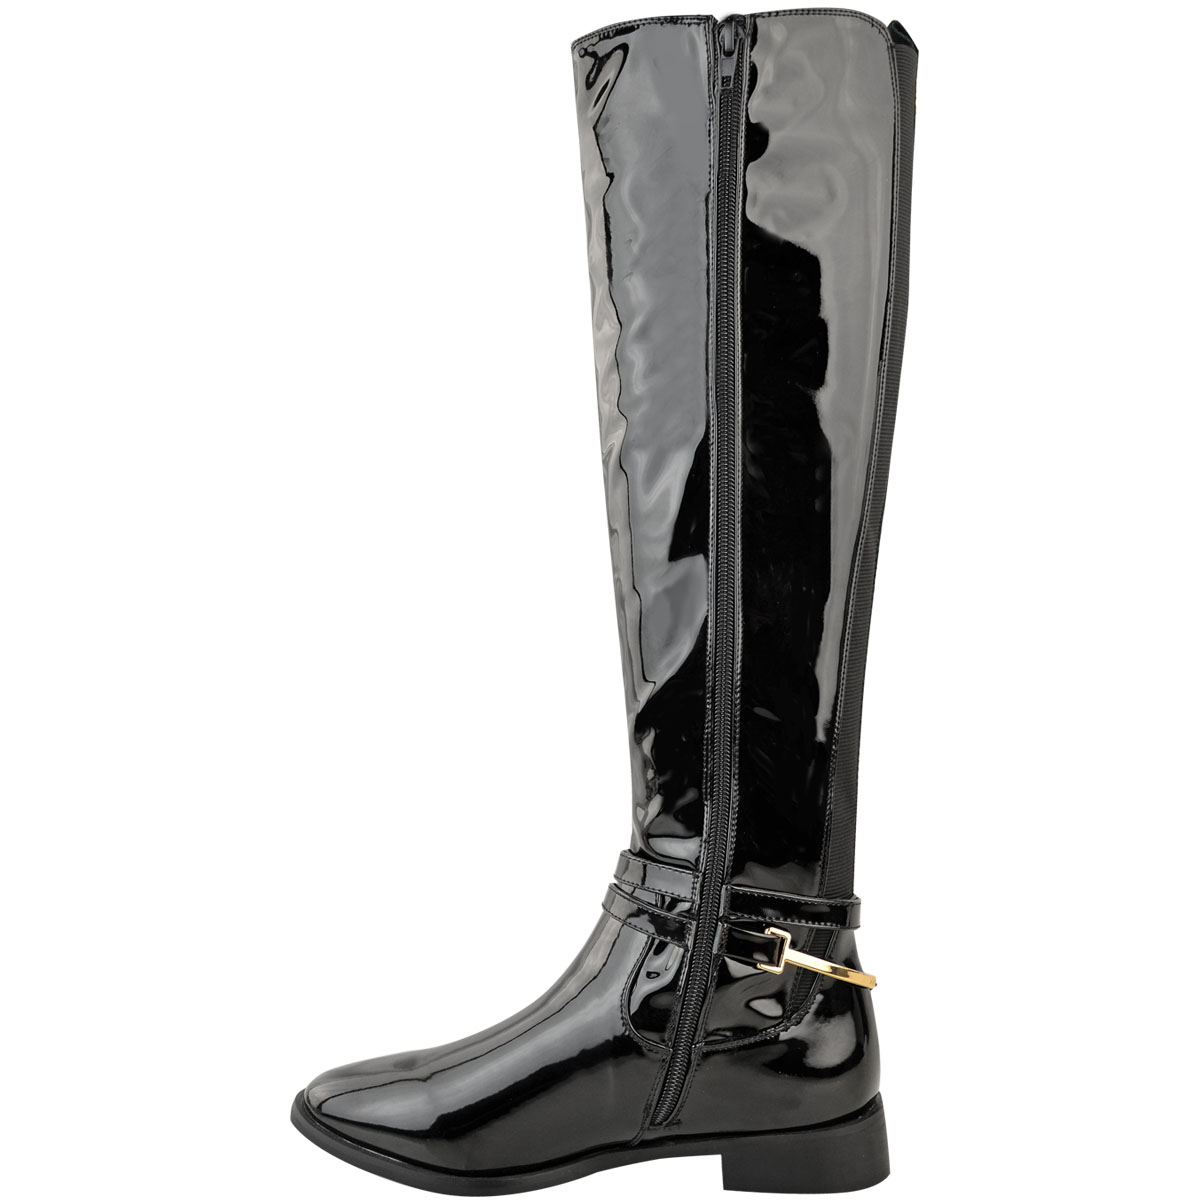 Womens-Ladies-Flat-Stretch-Knee-High-Riding-Boots-Grip-Sole-Winter-Shoes-Size-UK Indexbild 5